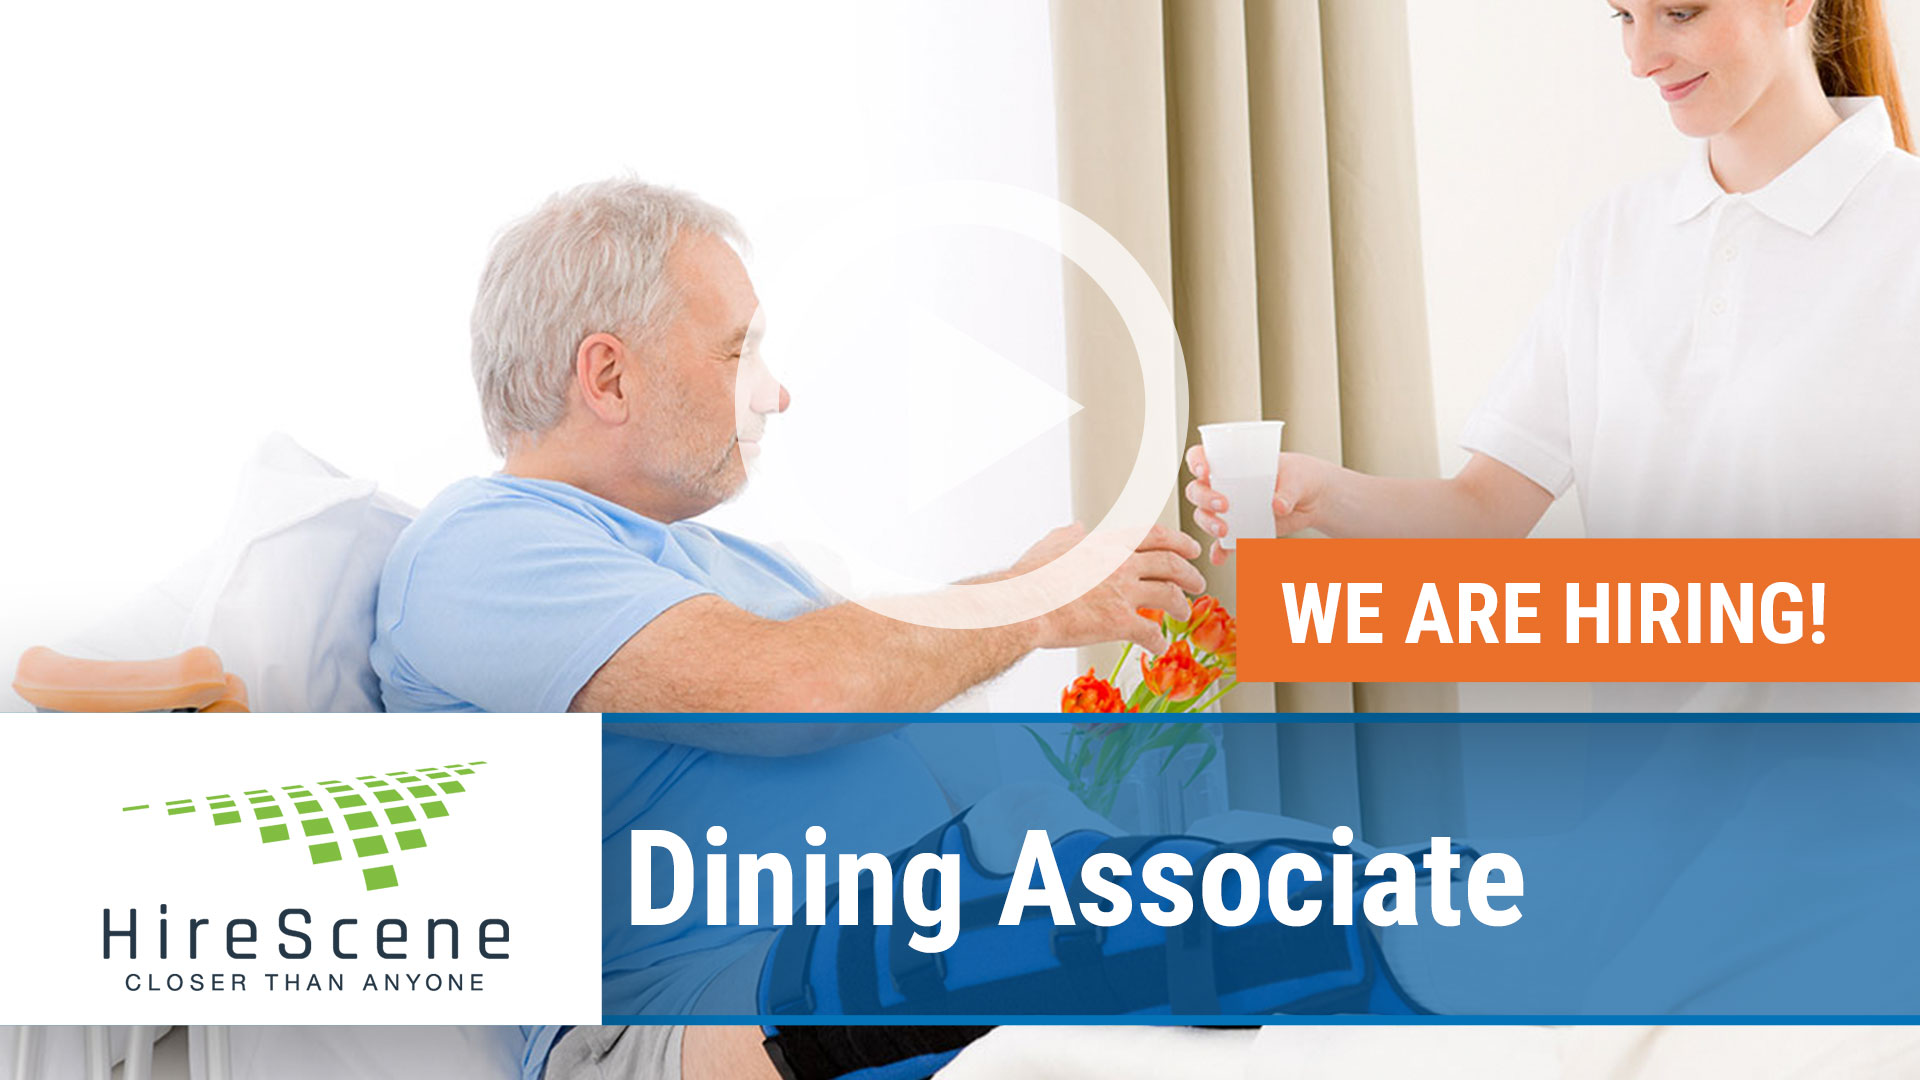 Watch our careers video for available job opening Dining Associate in Wilmington, NC